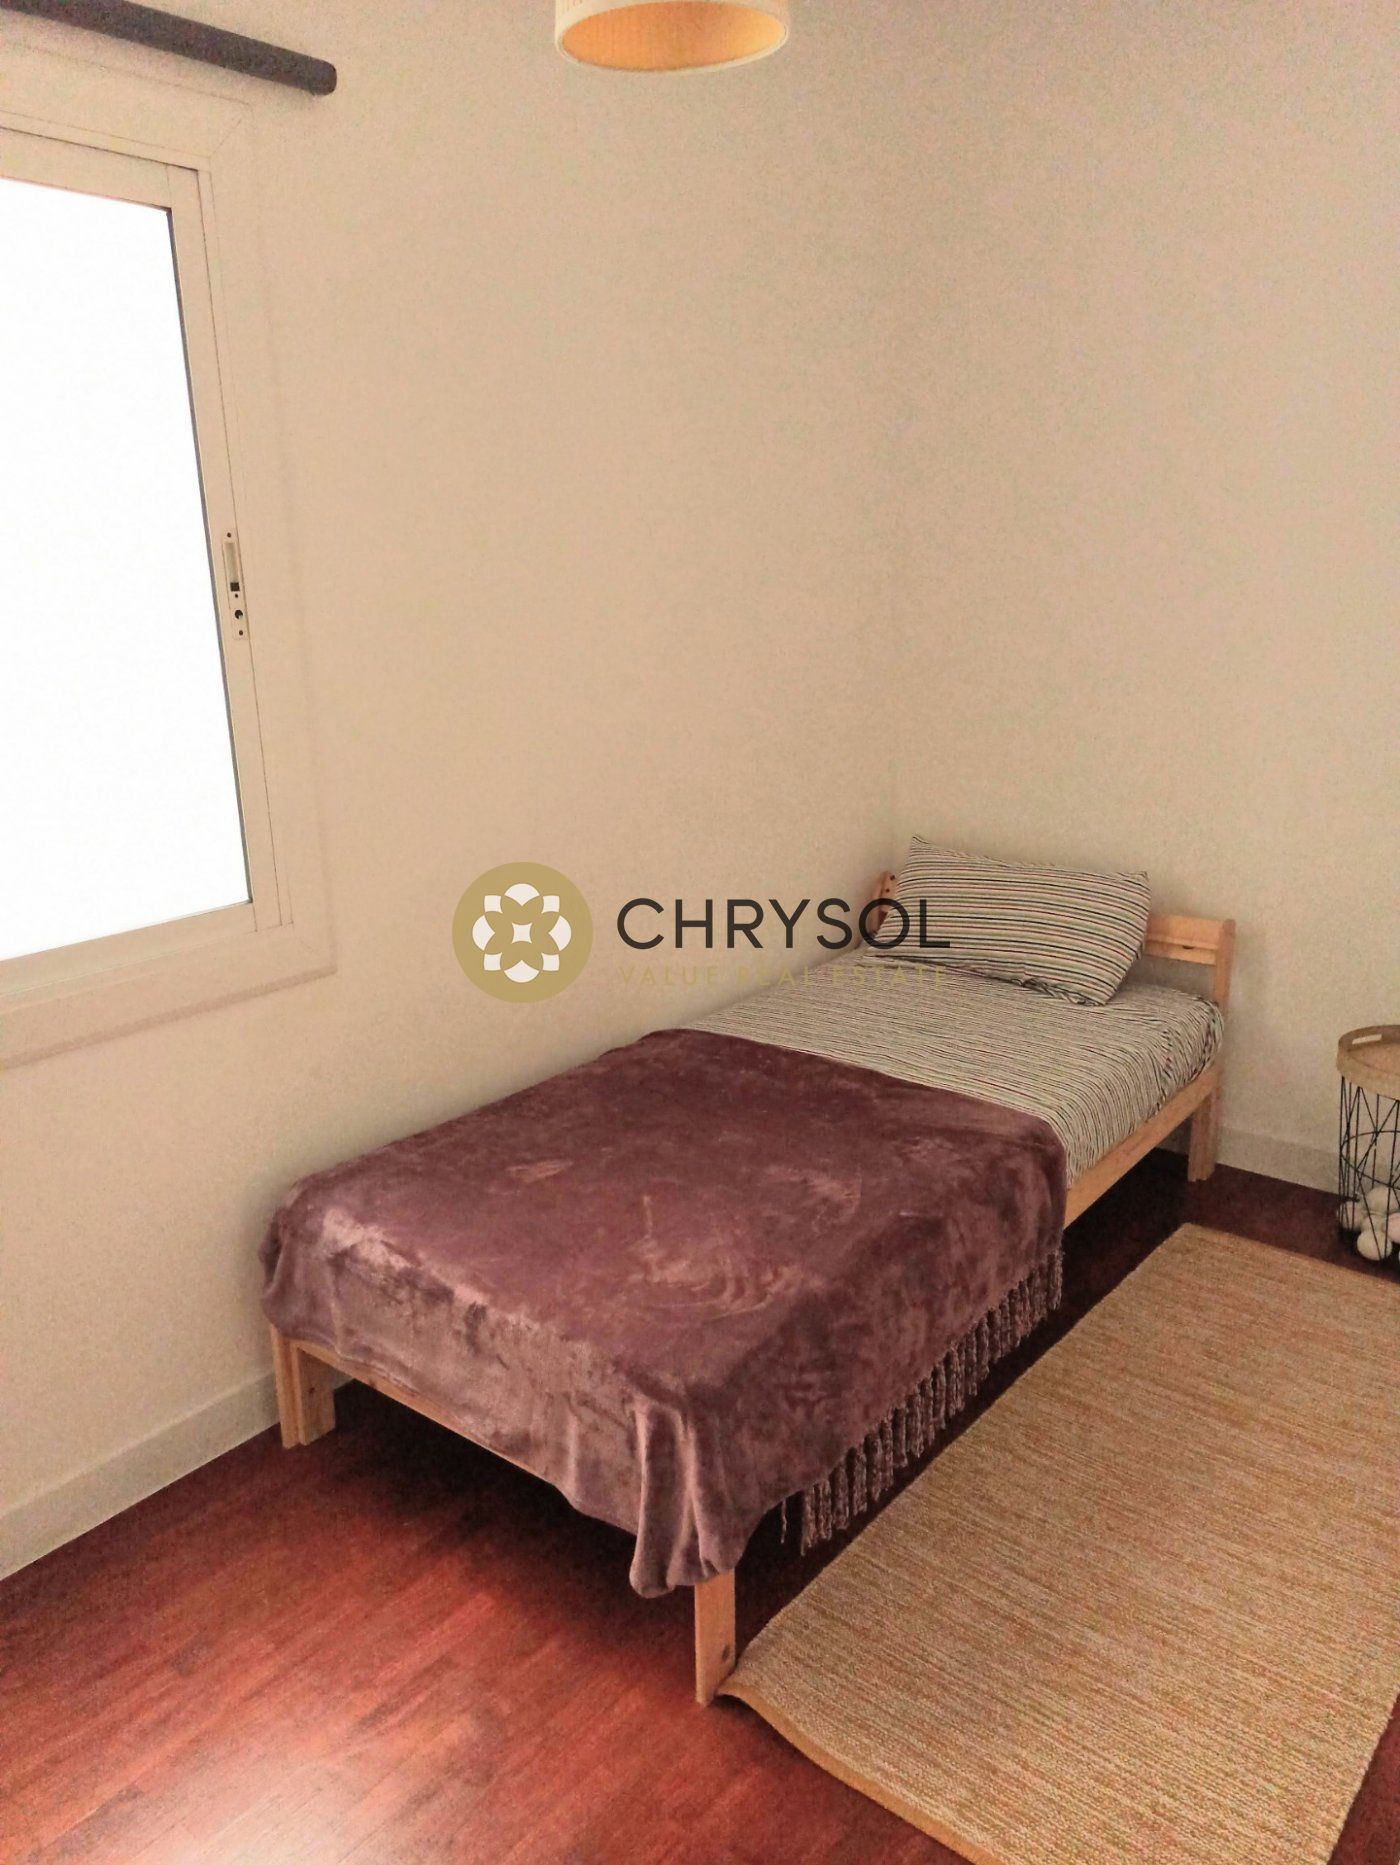 Photogallery - 25 - Chrysol Value